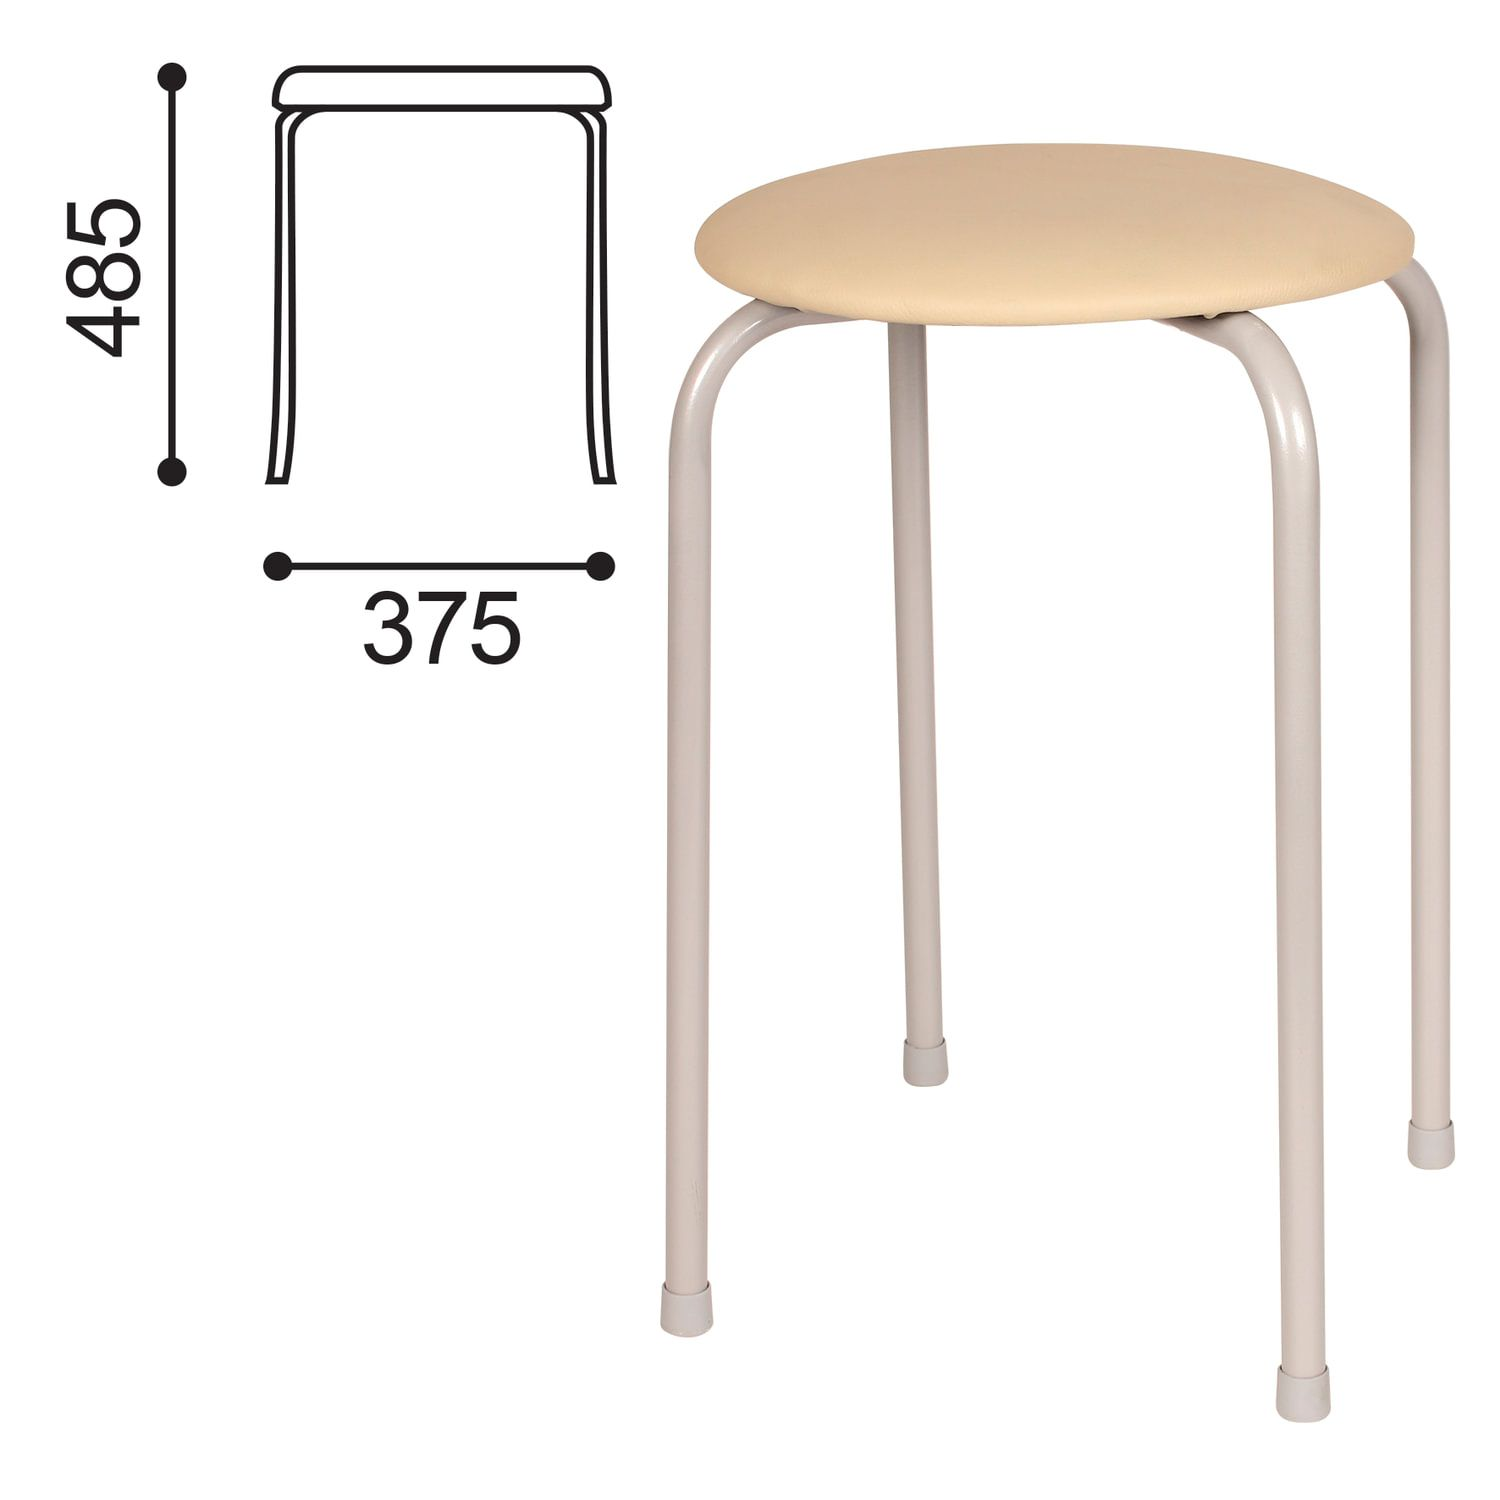 STOOL RS01-T011B, silver frame, beige leather